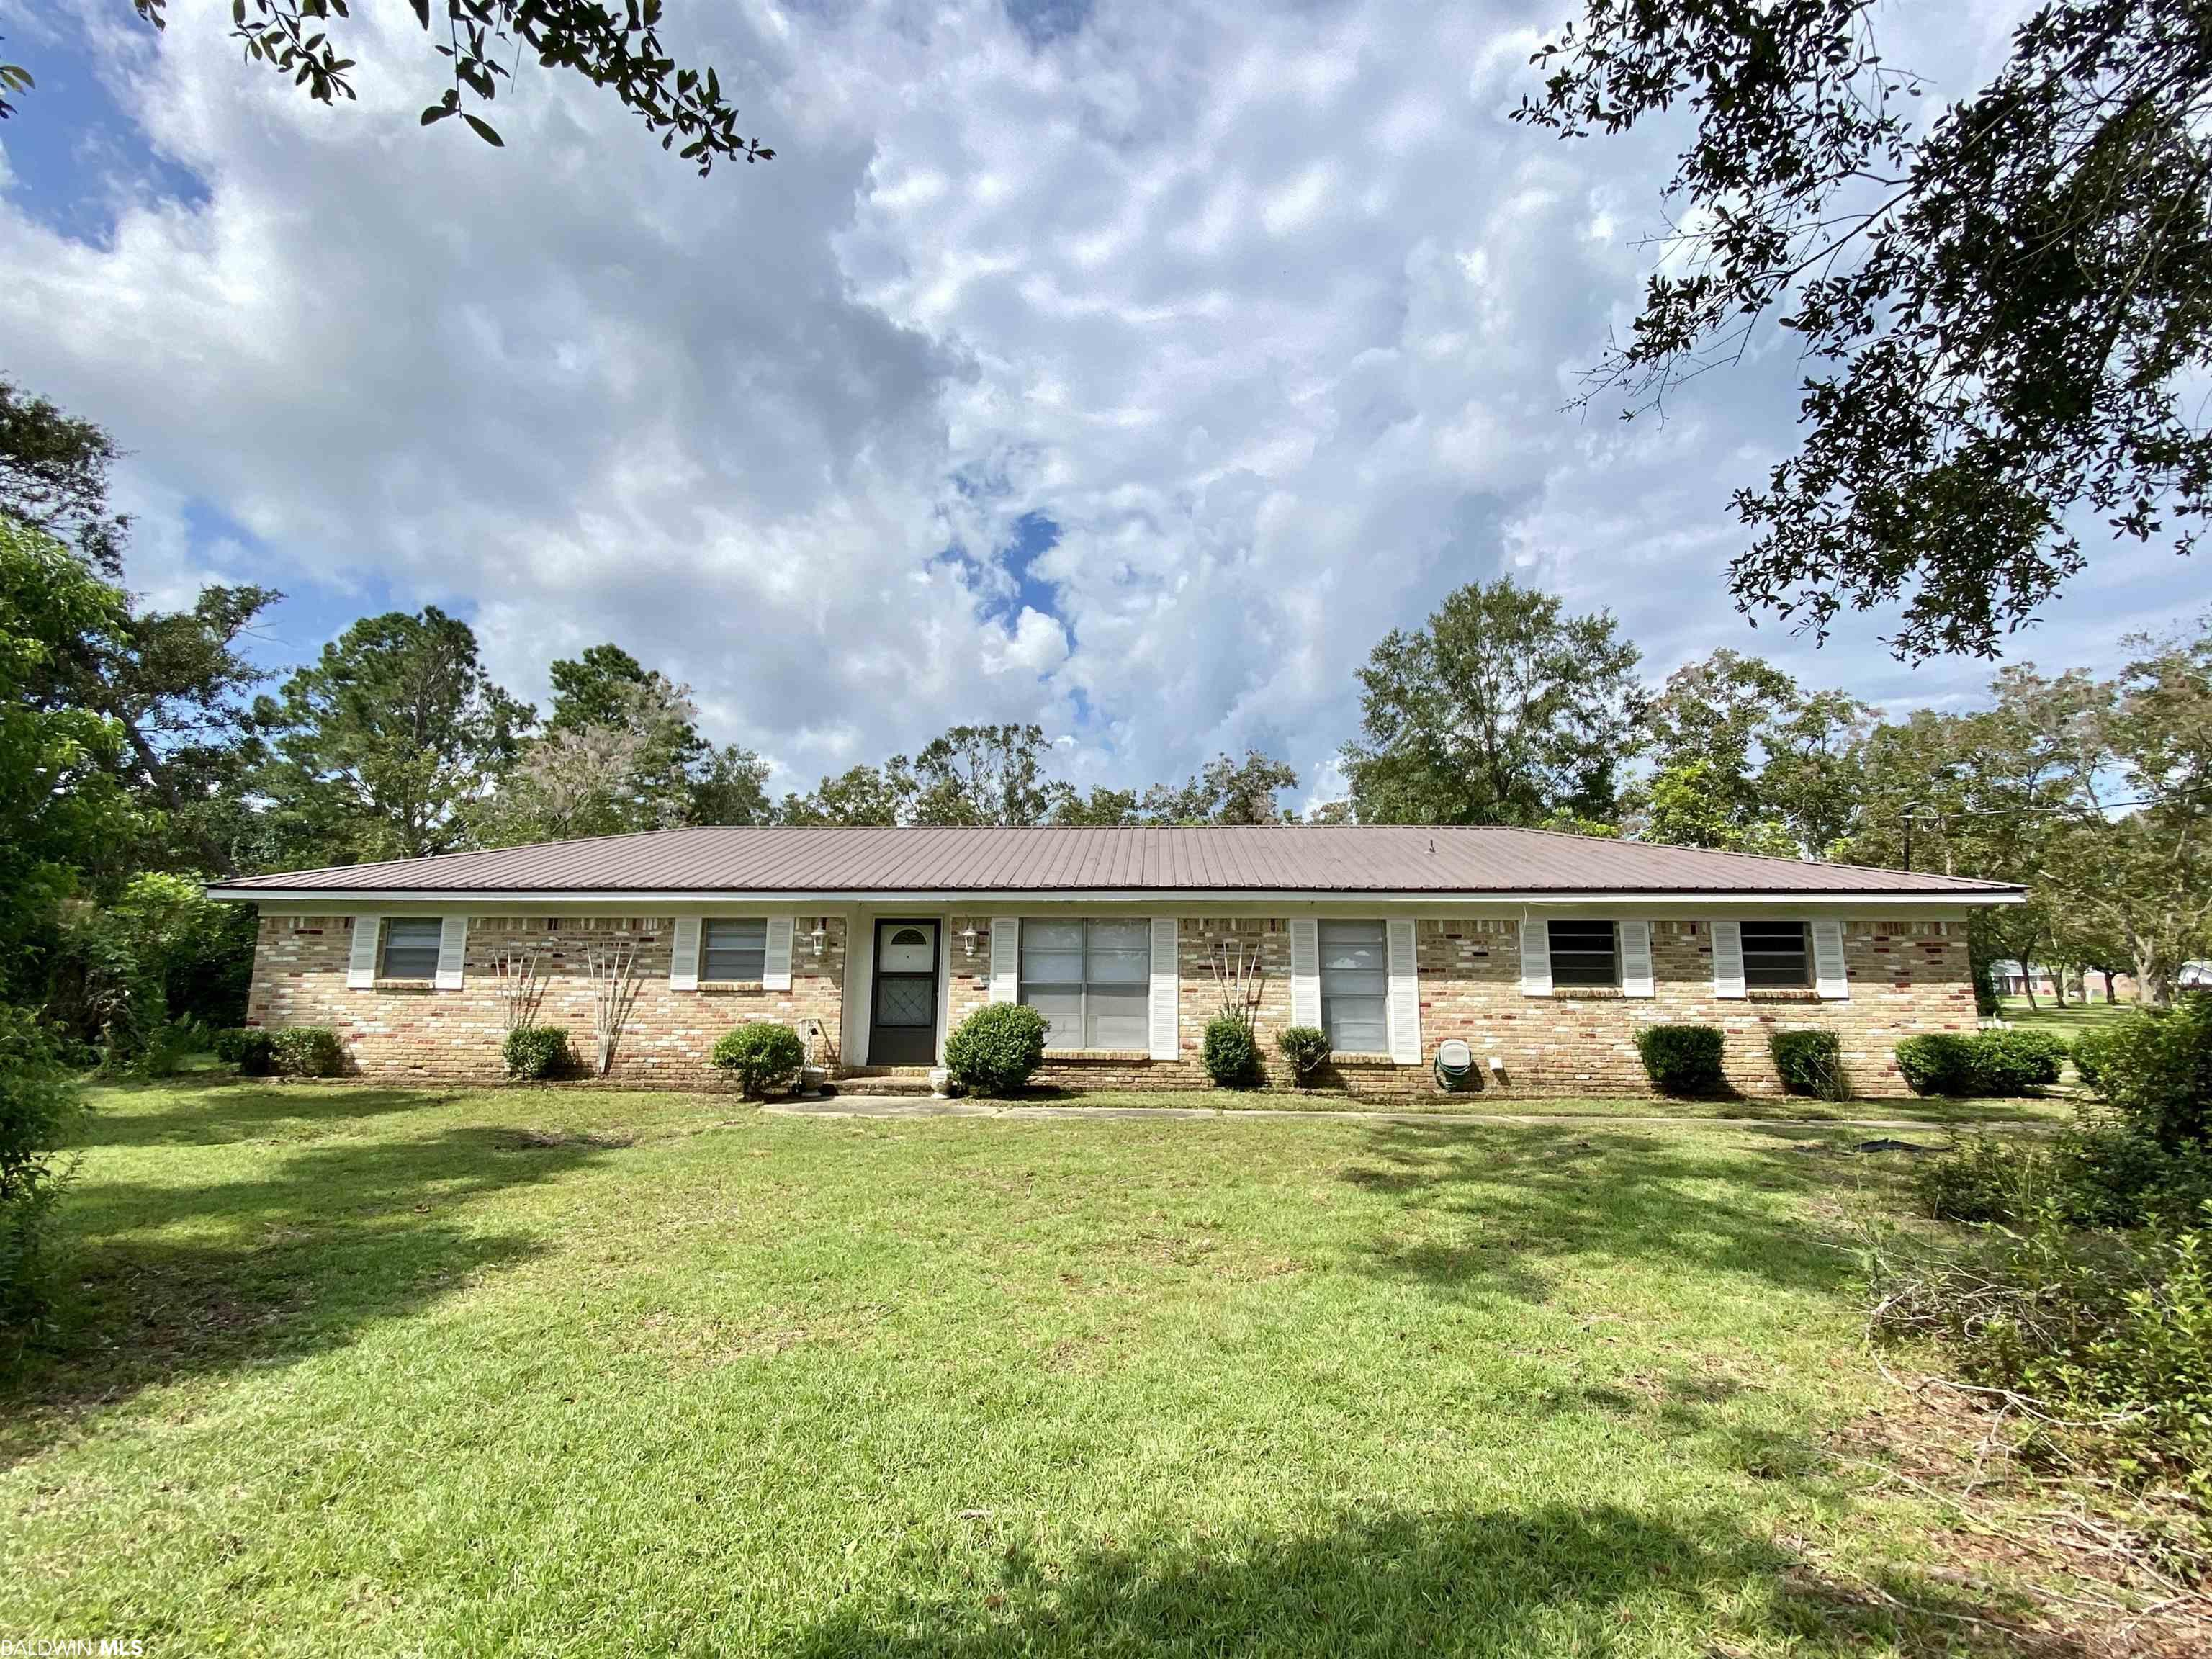 A home with a history and new opportunities! The original owner was Robertsdale's Mayor Thames who landscaped the two acre yard with many patented Camellias and Azaleas as well as pecan trees and fruit trees. Since then there has only been one other owner. If you like the retro look you'll love this well built home! The kitchen and bathrooms have some of the original features. The entire interior has been painted and is waiting for your personal touch. The Kitchen, Den and Hallway has new tile flooring and the bedrooms are cleared for whatever kind of flooring you like. There is plenty of room with the large living room dining room combination and a roomy den off the kitchen. There is a lot of storage from the abundance of kitchen cabinets to the extra closets and in the carport. Two good sized rooms in the 2 vehicle carport has shelving and where you'll find the laundry area. The backyard is huge and has the detached garage/workshop. If you love to garden this could be a showplace once again with a little TLC and has the perfect area for a large garden! It's just waiting for you to discover the roses, blueberry bush, the persimmon and plum trees and enjoy the pecan orchard! This is a large corner lot on Hwy 90 that could potentially be of commercial use.